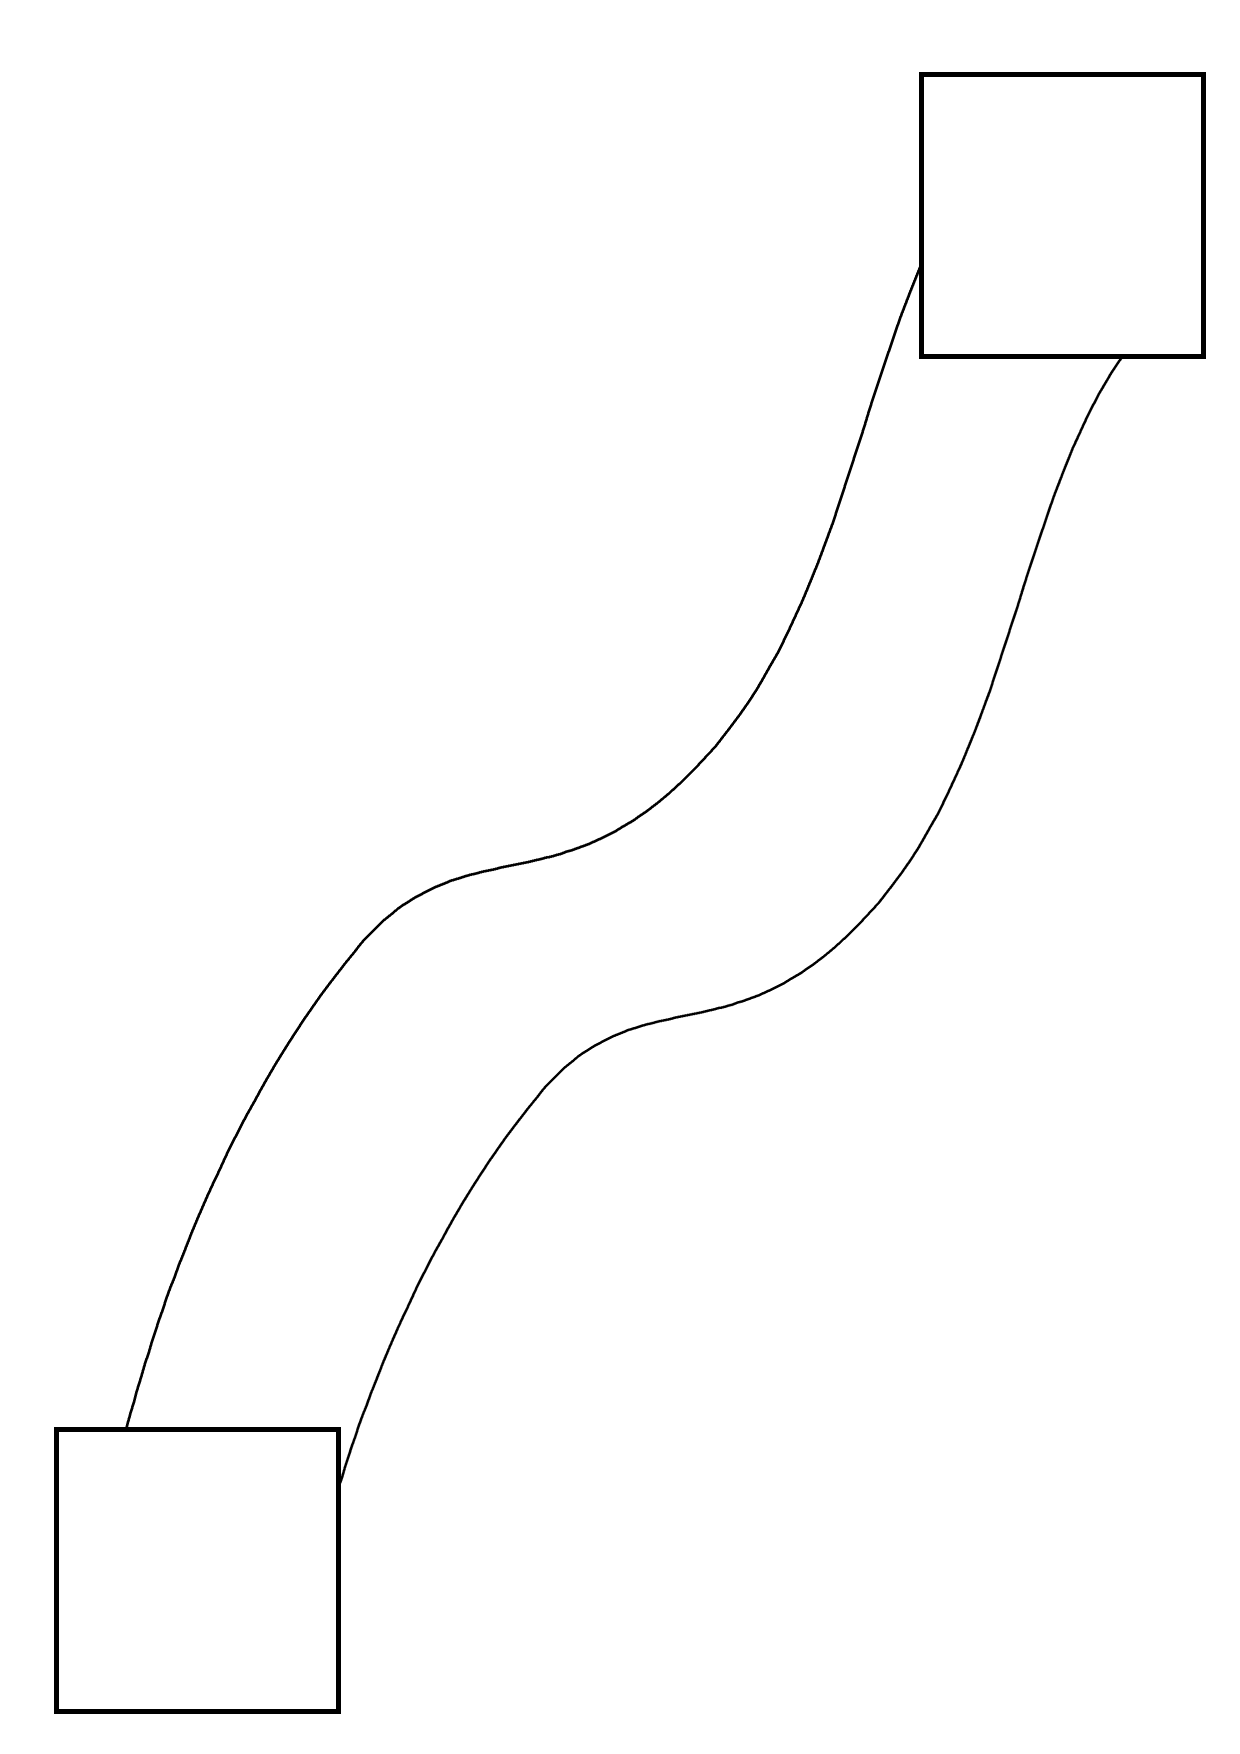 Line drawing, a sqaure box in the bottom left and top right corners, joined by a path meant to represent the yellow brick road.